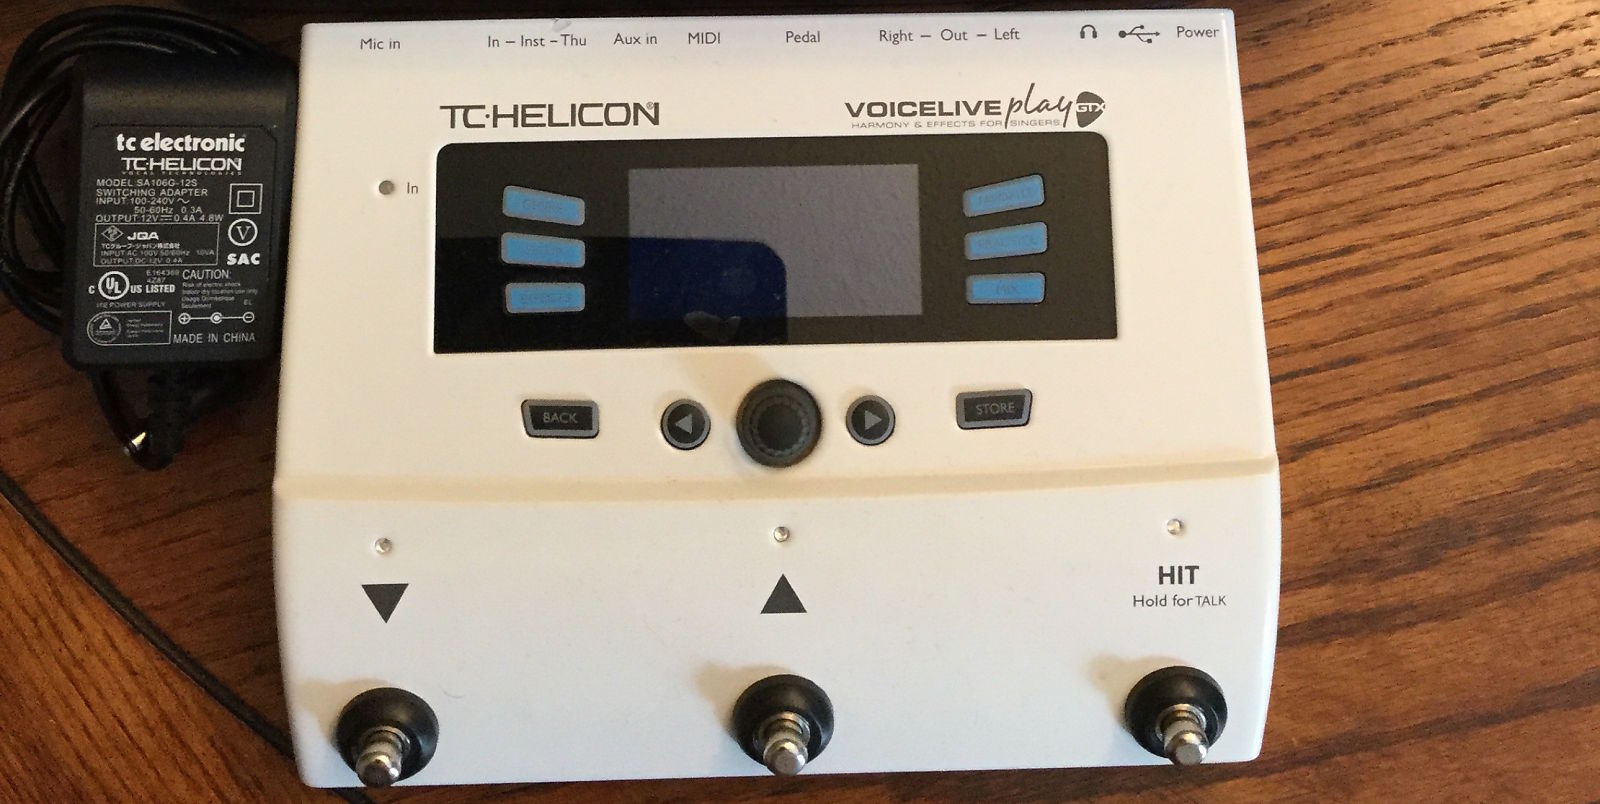 Tc Helicon Voicelive Play Gtx Vocal Amp Guitar Reverb